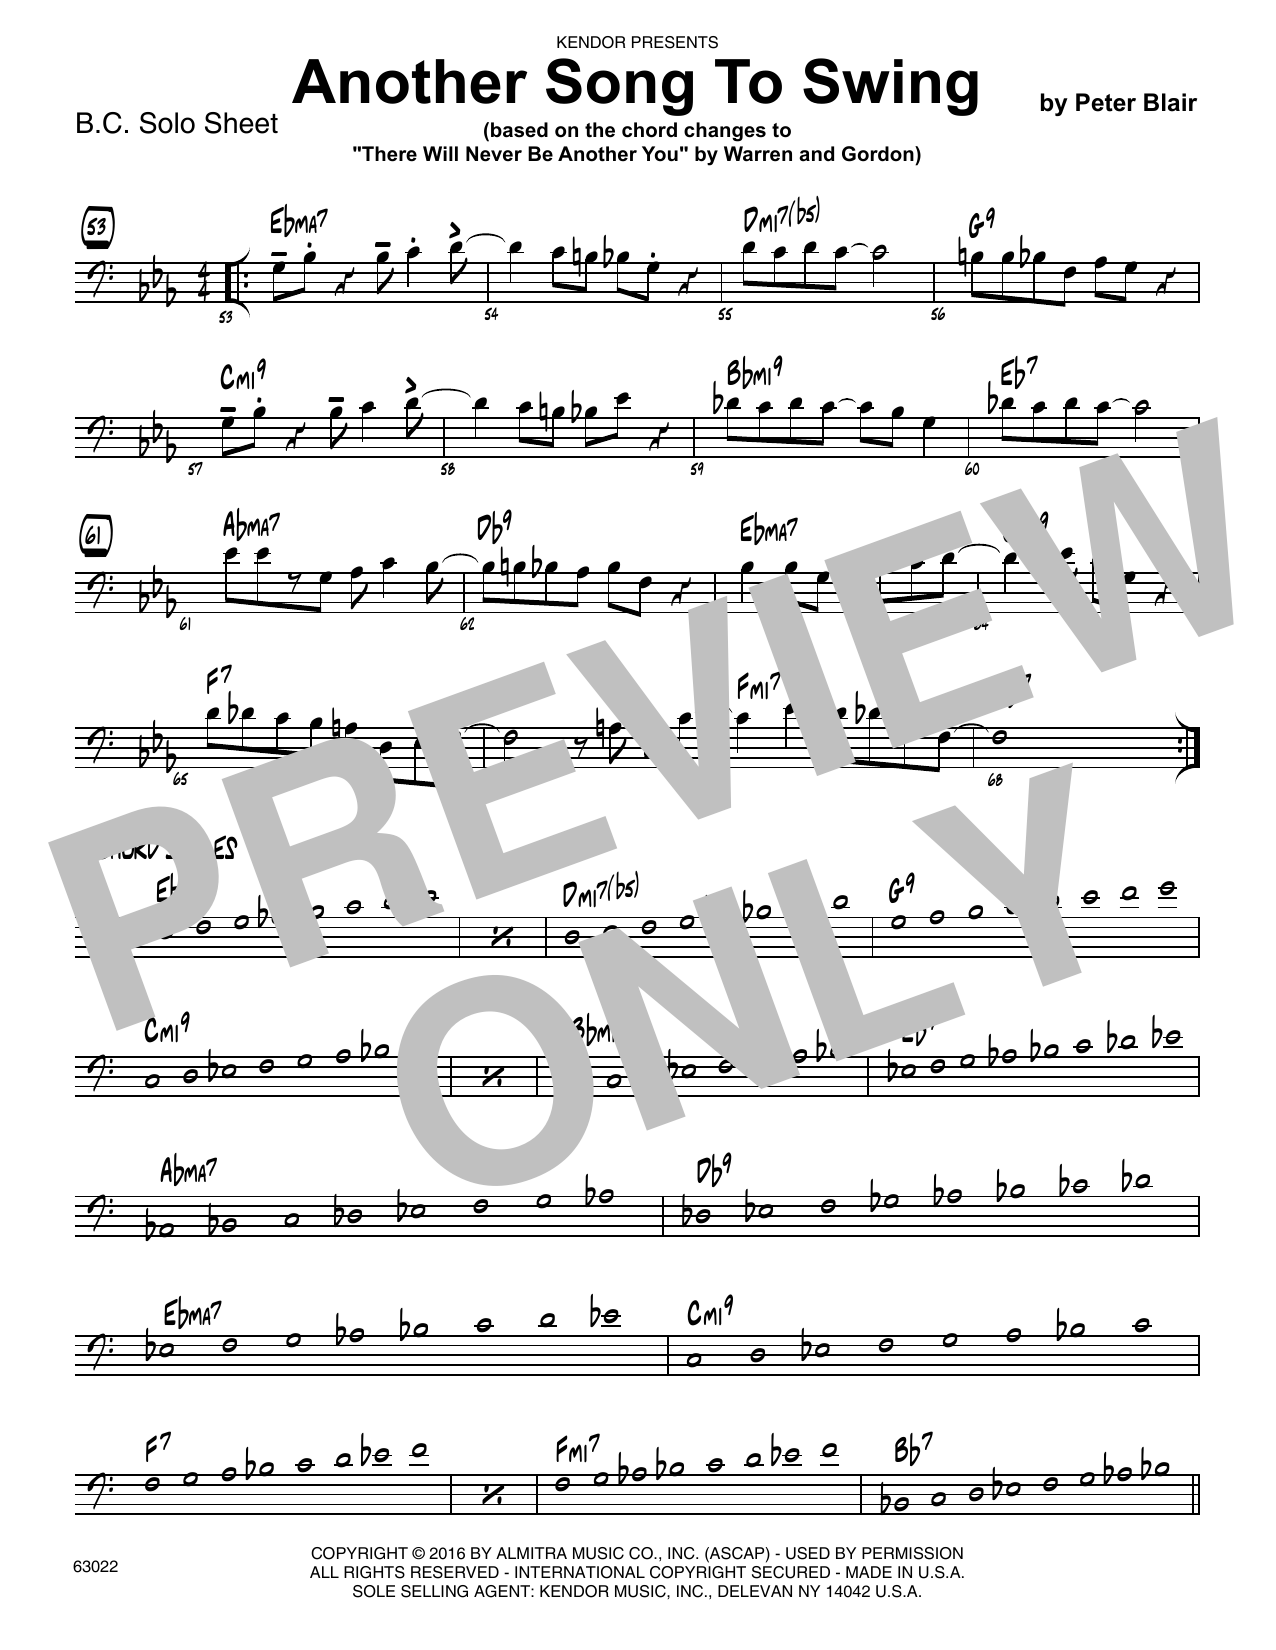 Another Song To Swing - Sample Solo - Bass Clef Instr. Sheet Music